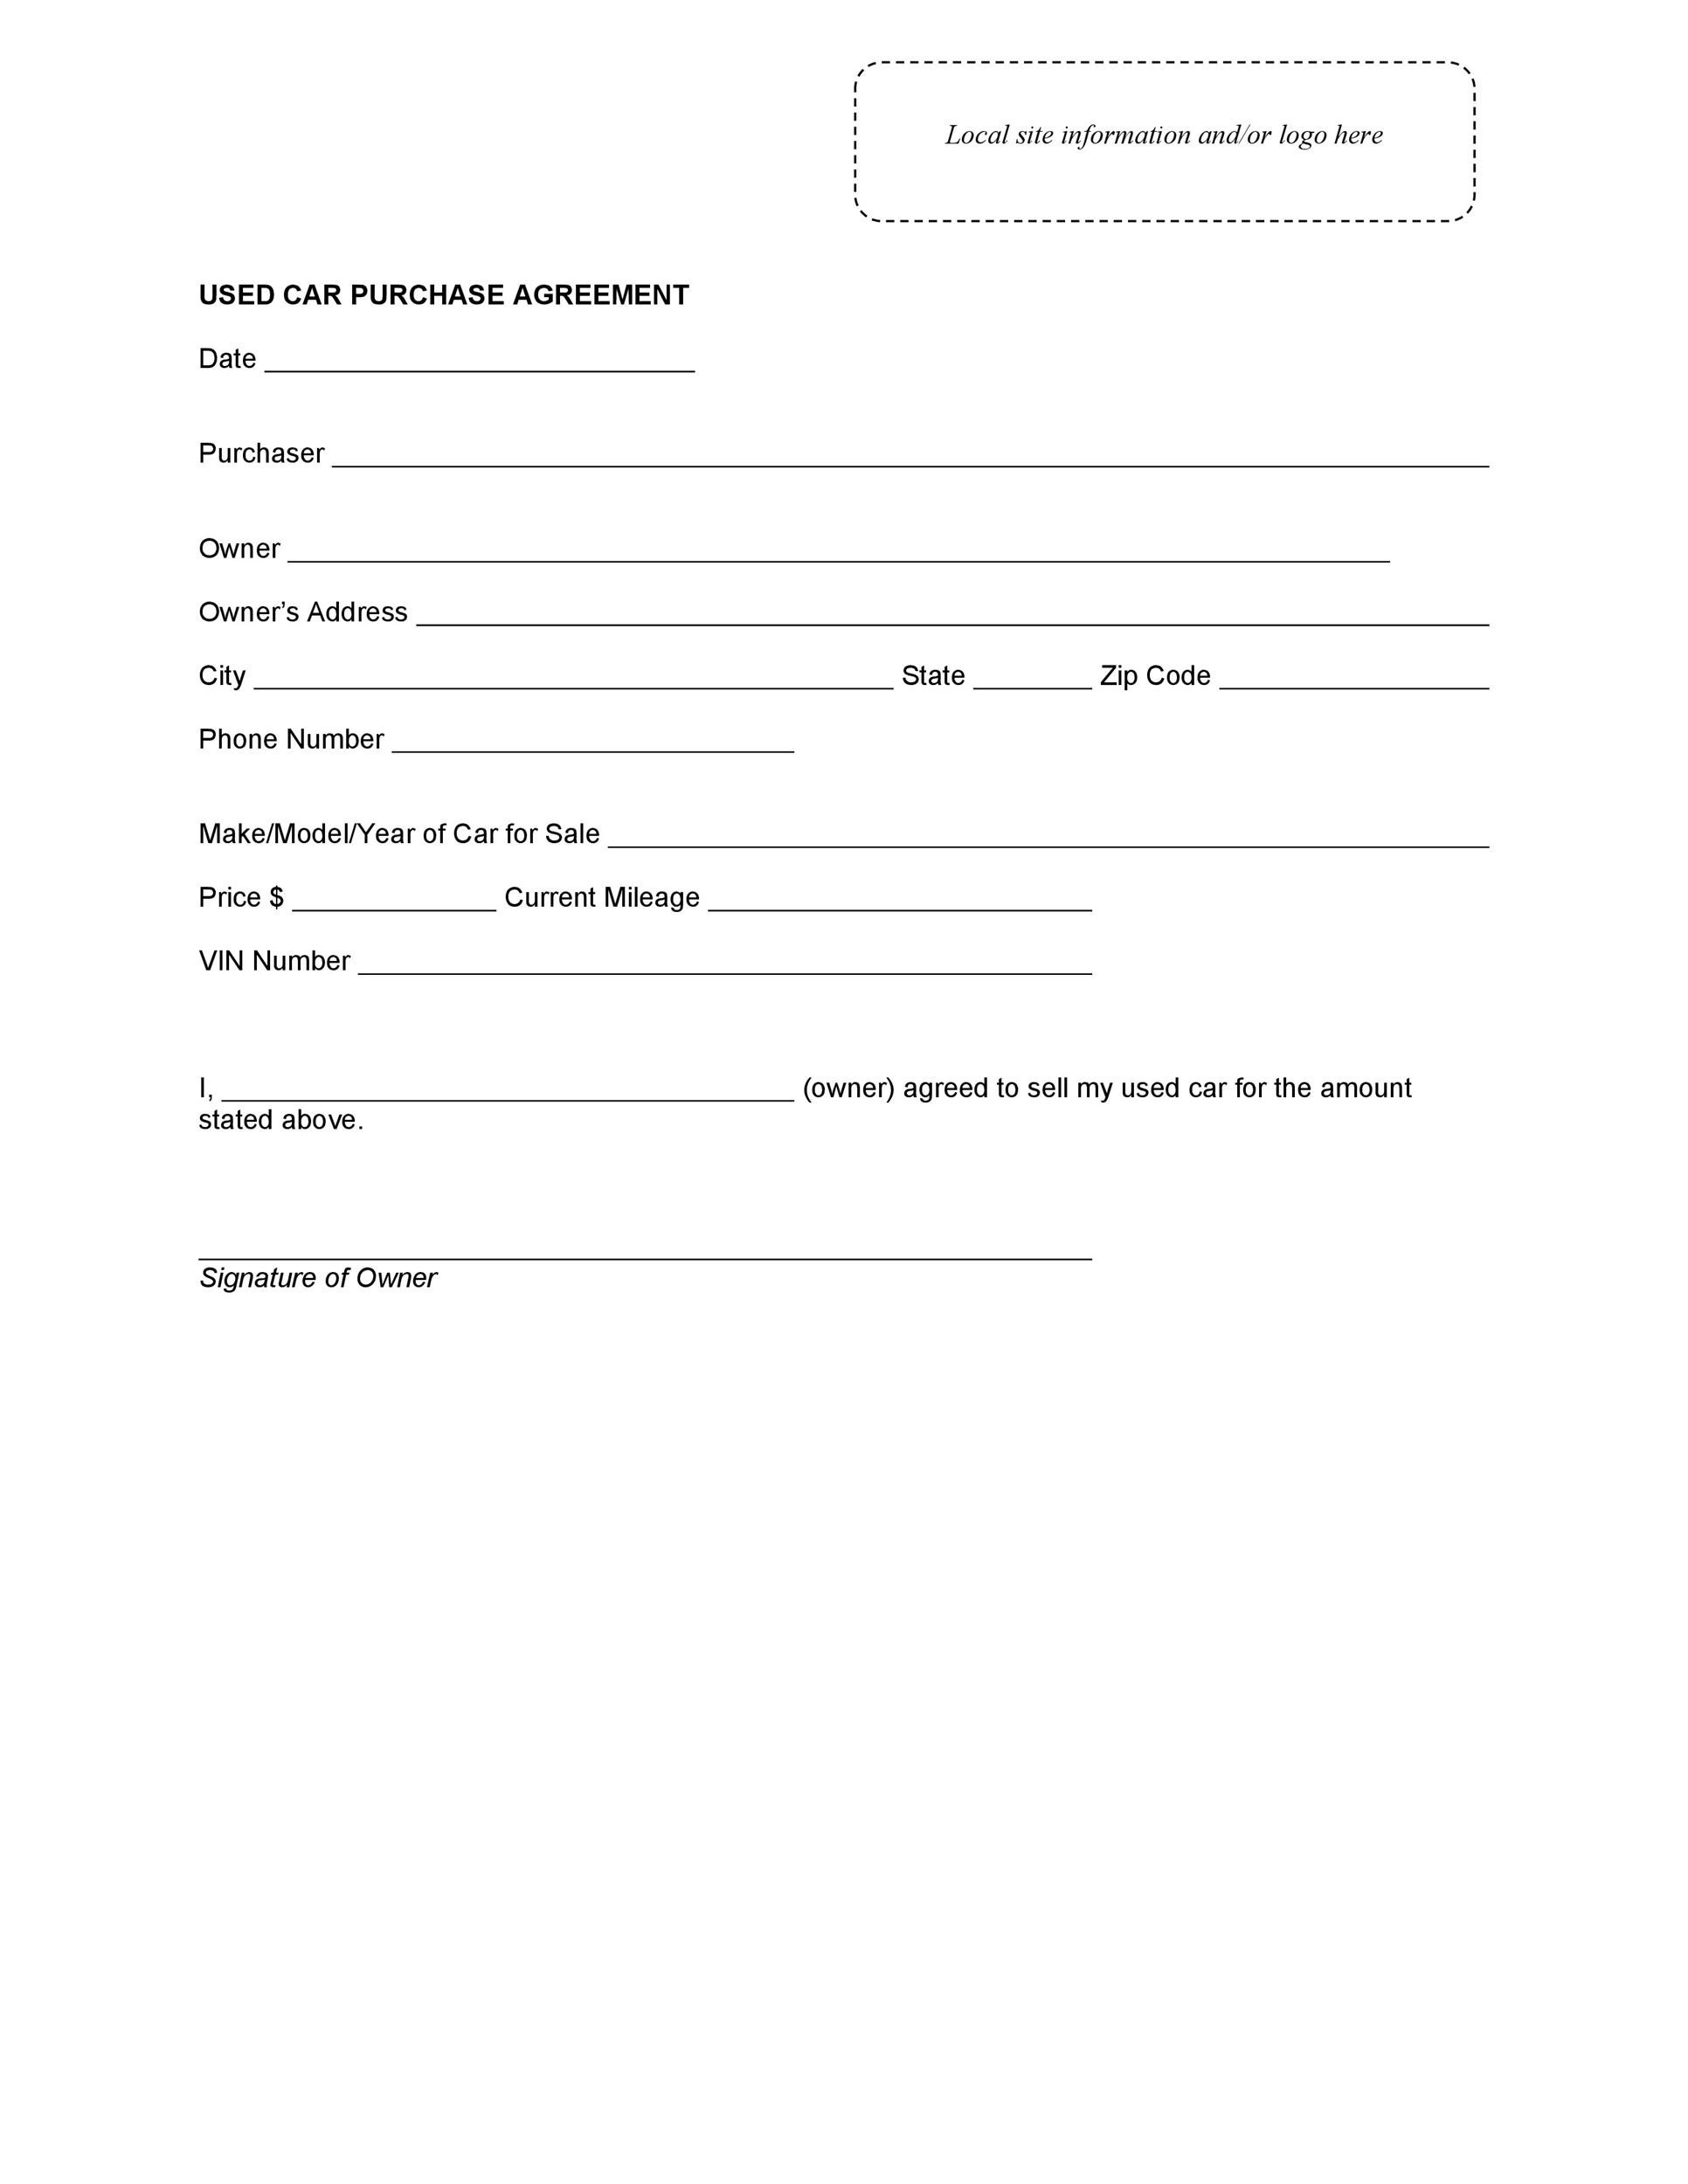 Car Sale Agreement Form Sample Free Employee Training Manual